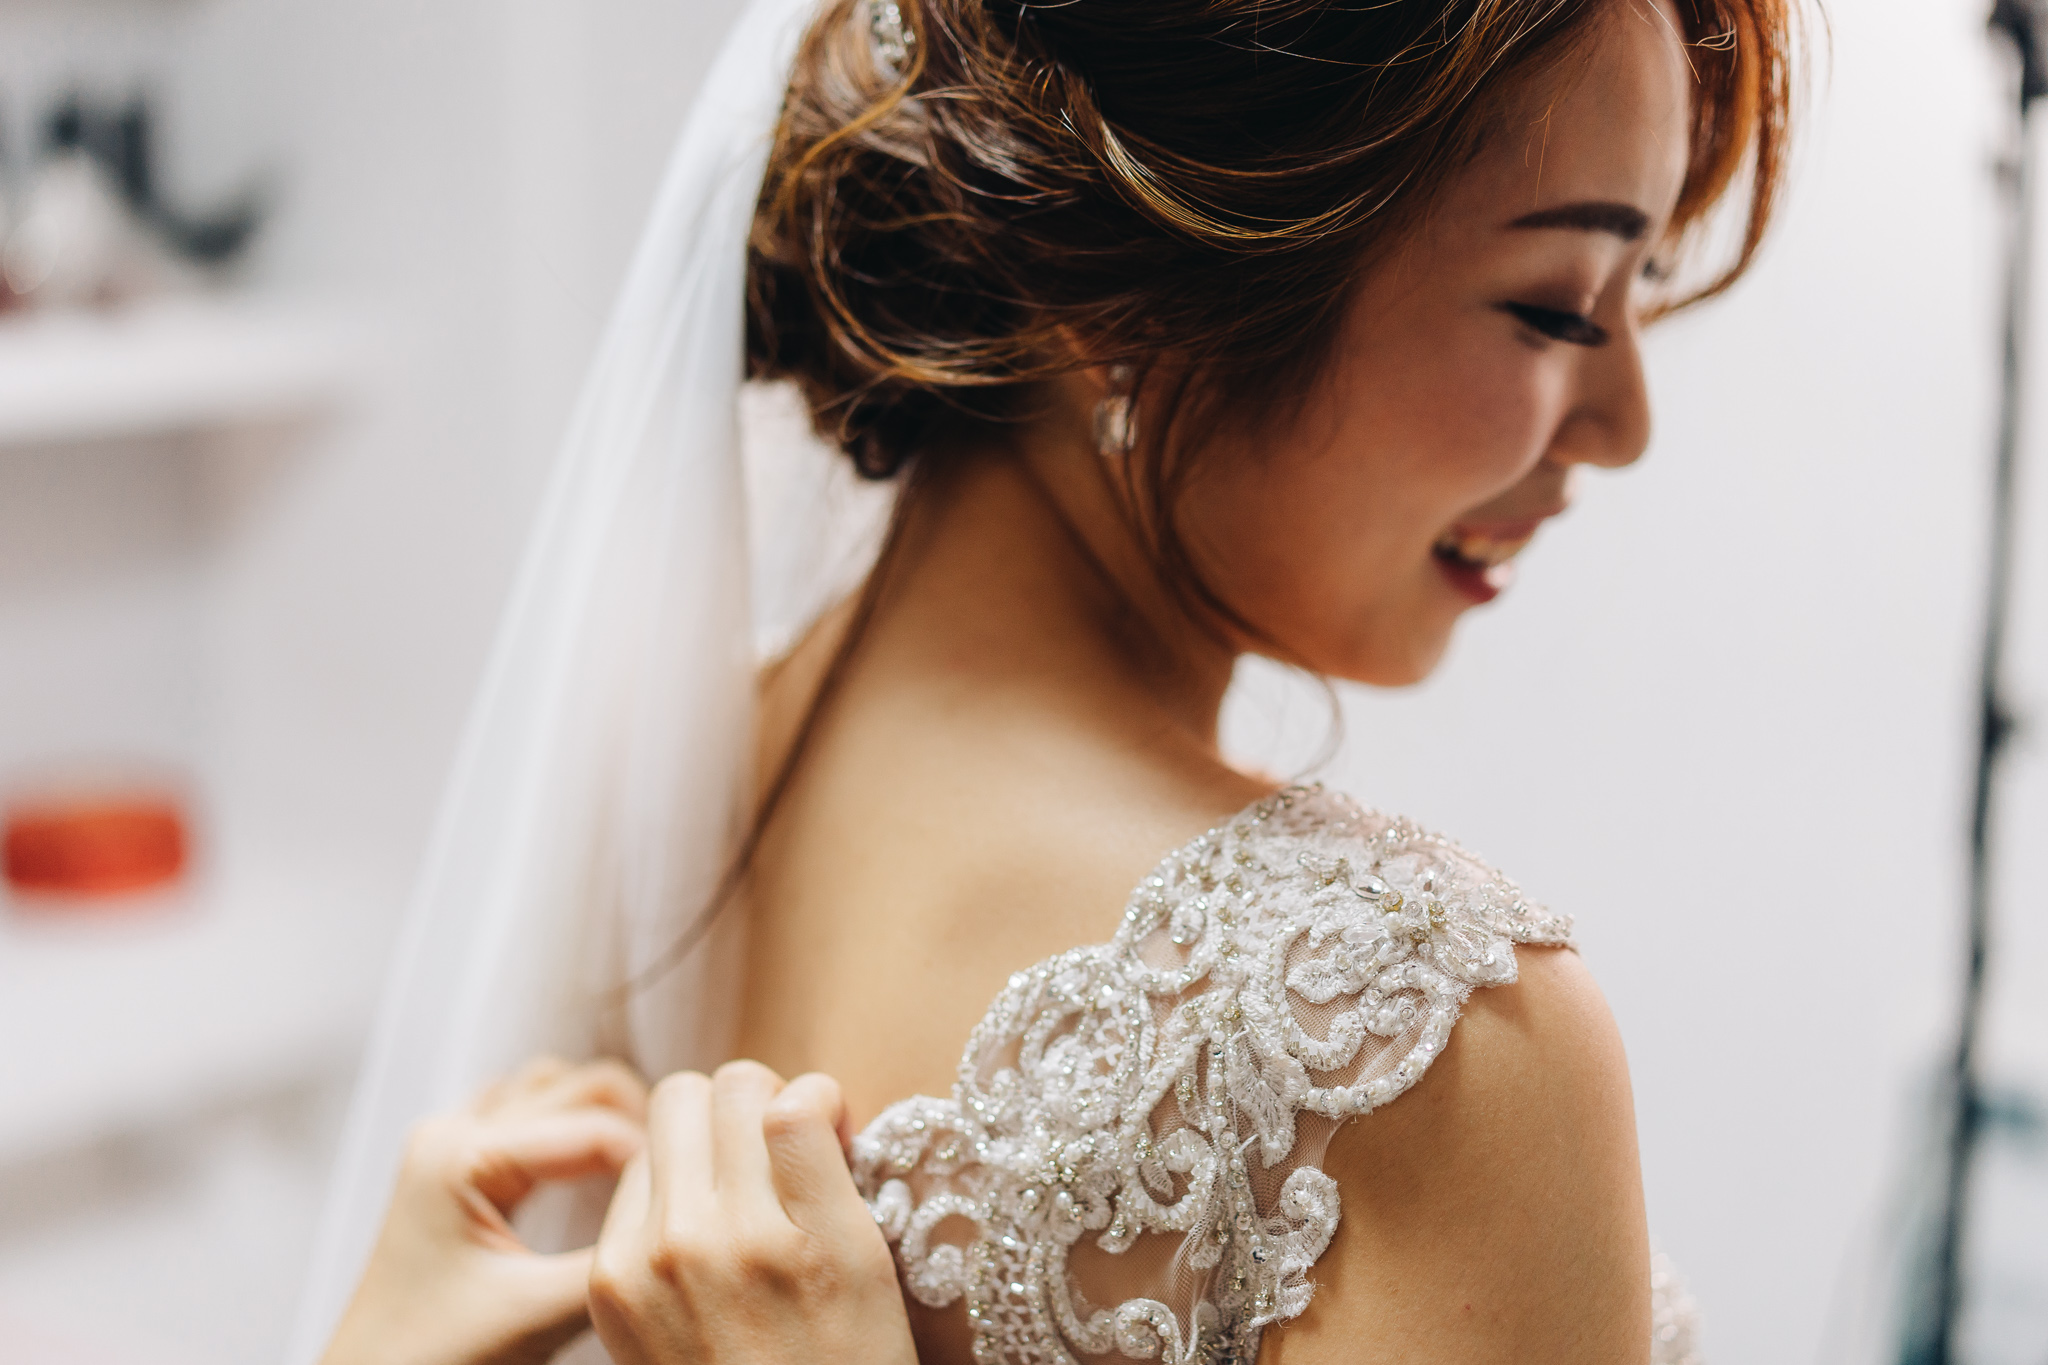 Cindy & Kevin Wedding Day Highlights (resized for sharing) - 007.jpg